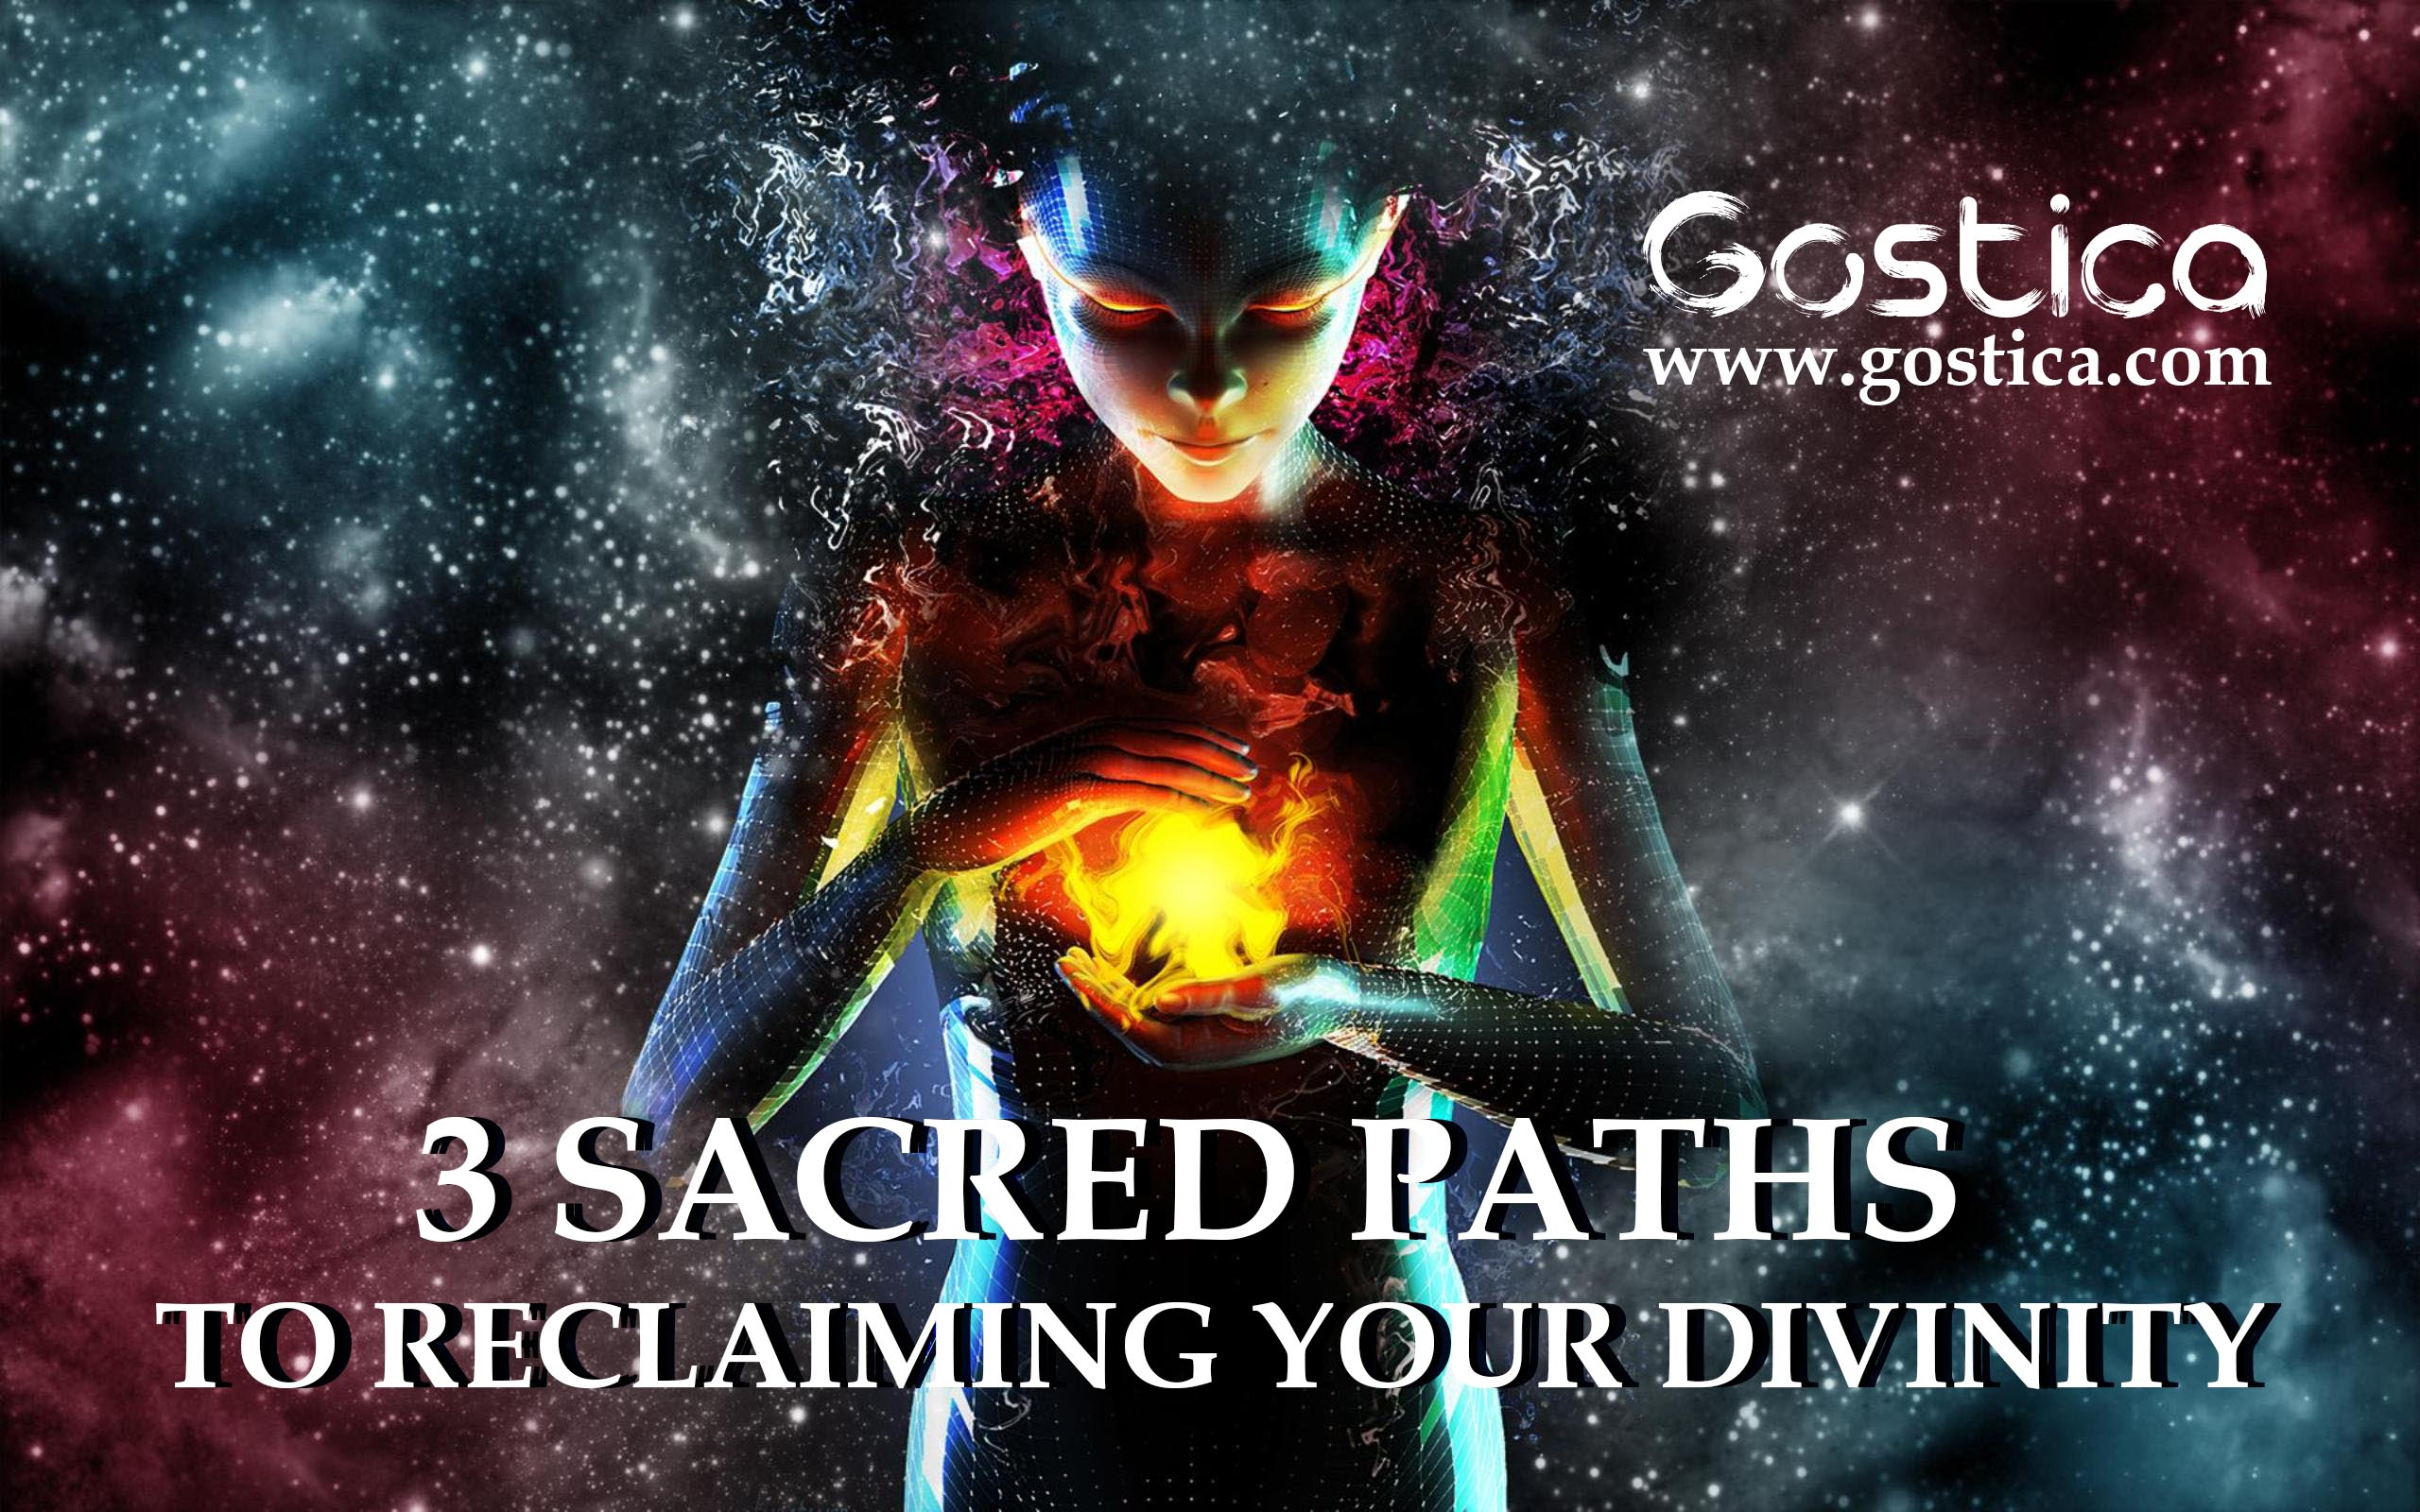 3-SACRED-PATHS-TO-RECLAIMING-YOUR-DIVINITY..jpg